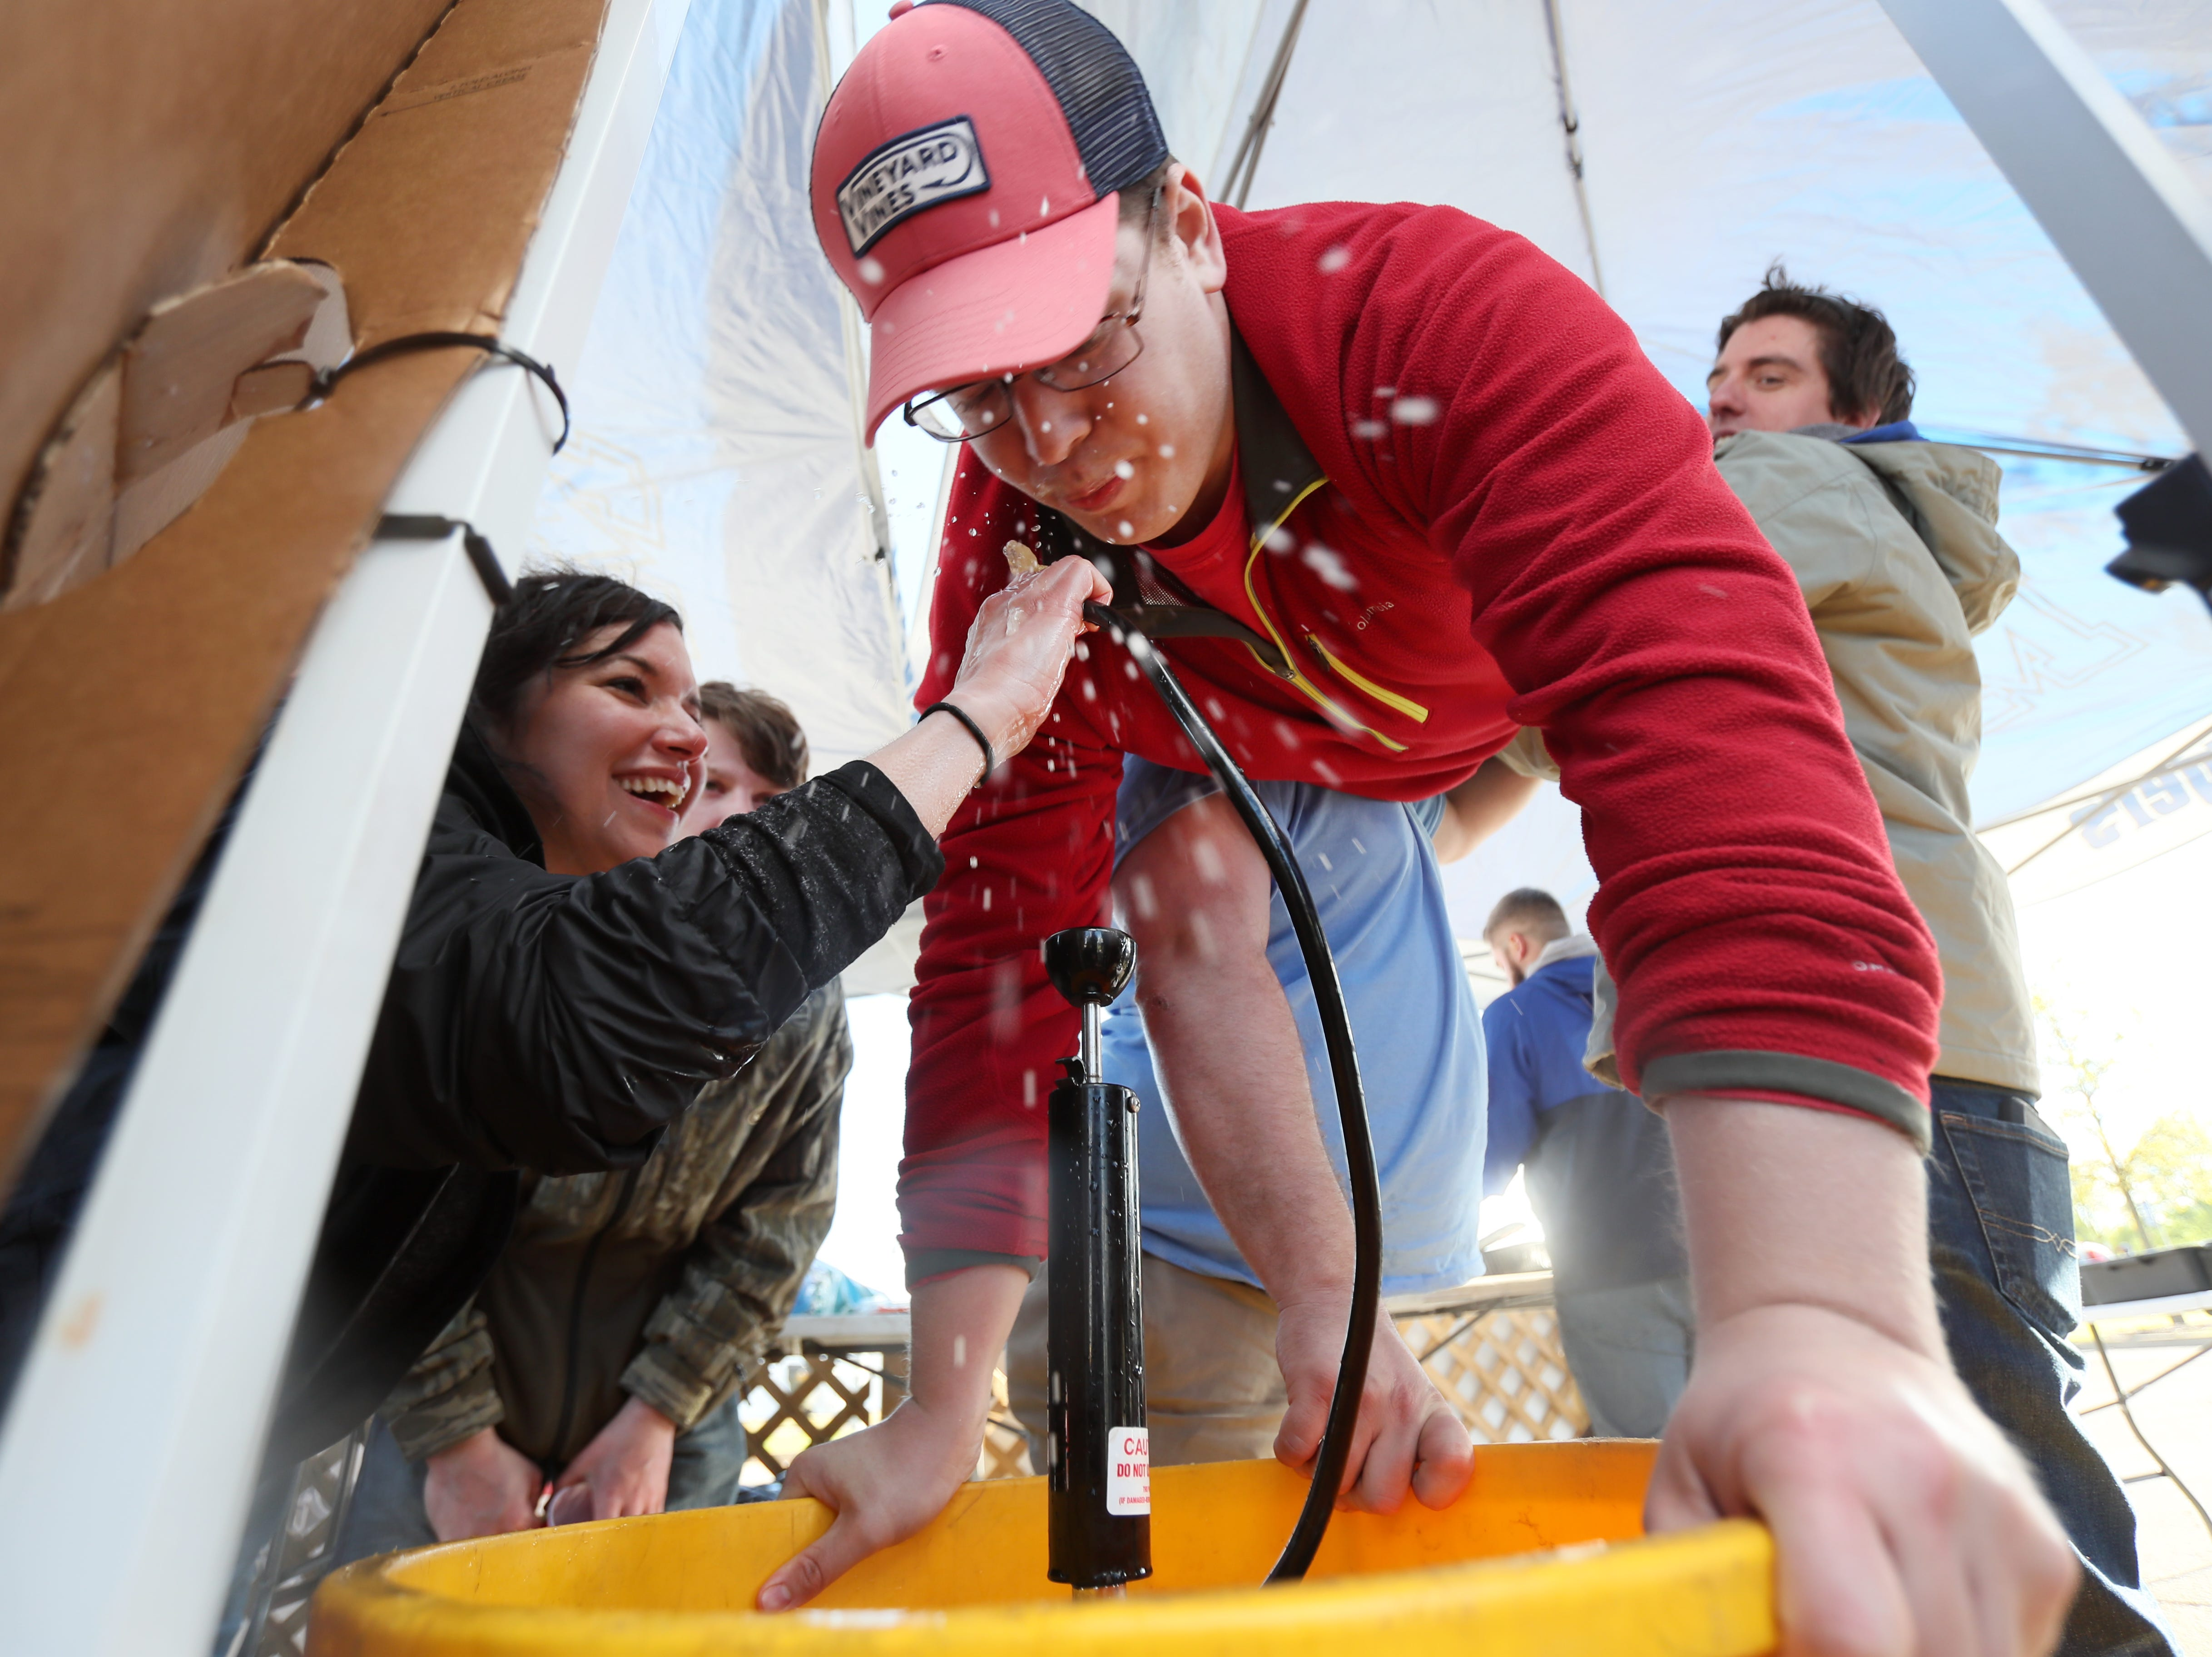 Adam, last name withheld, takes a keg stand during the 17th Annual Southern Hot Wing Festival on Tiger Lane at Liberty Bowl Memorial Stadium on Sunday, April 14, 2019.